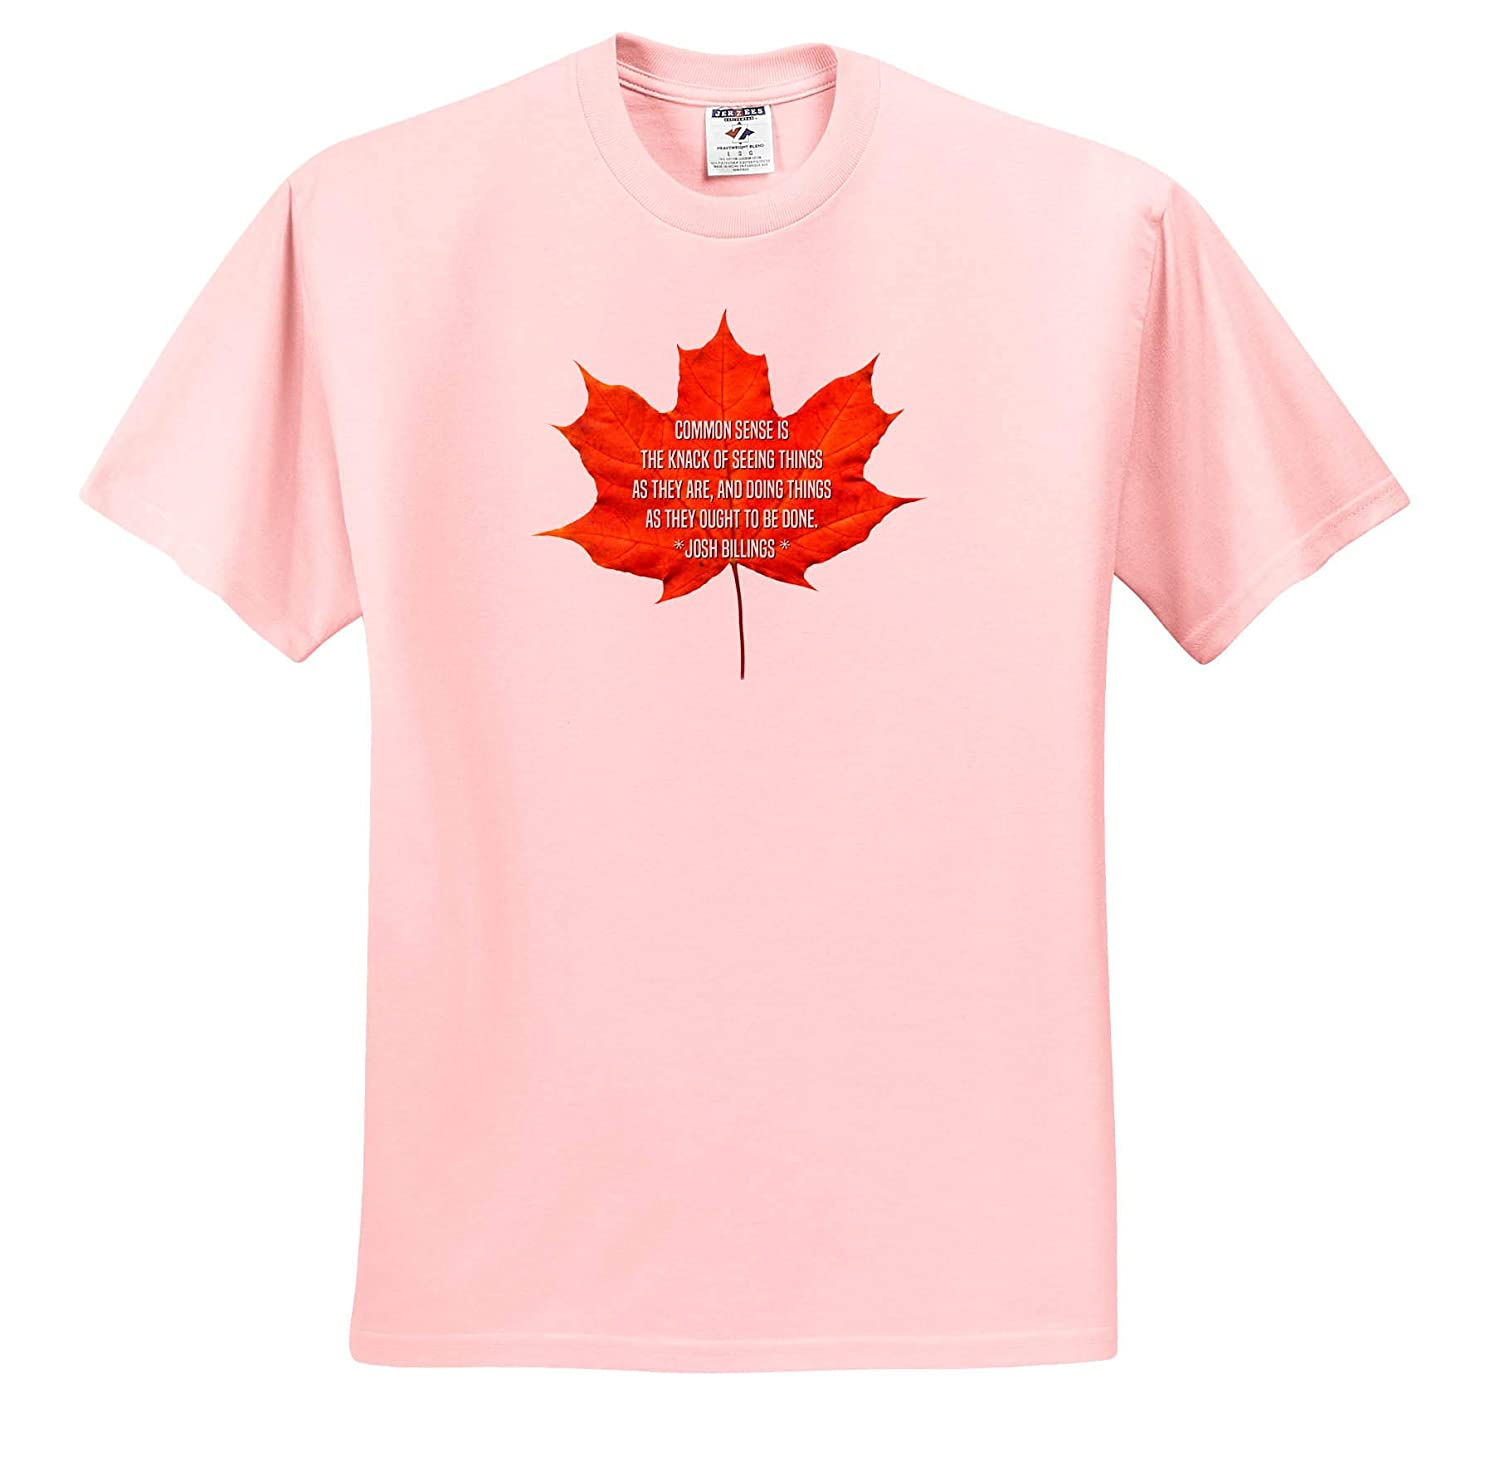 Quotes Josh Billing Maple Leaf and The Text Common Sense is The Knack of Seeing Things - T-Shirts 3dRose Alexis Design